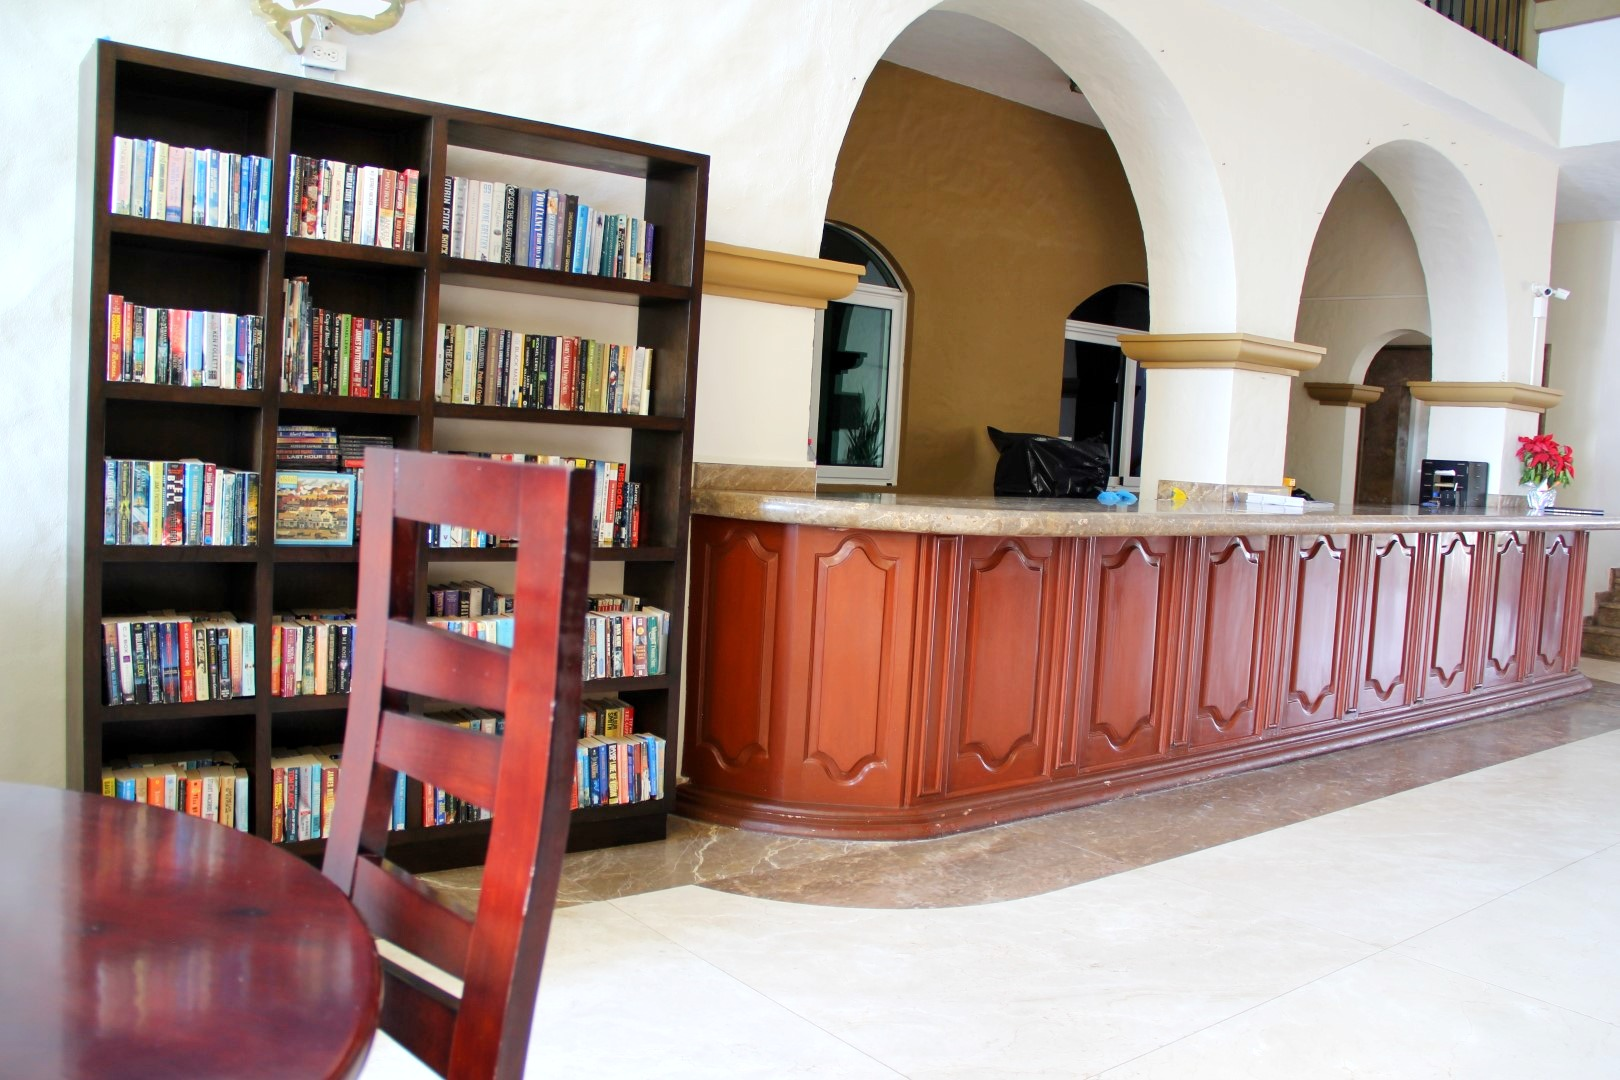 Administration and book exchange in the lobby.